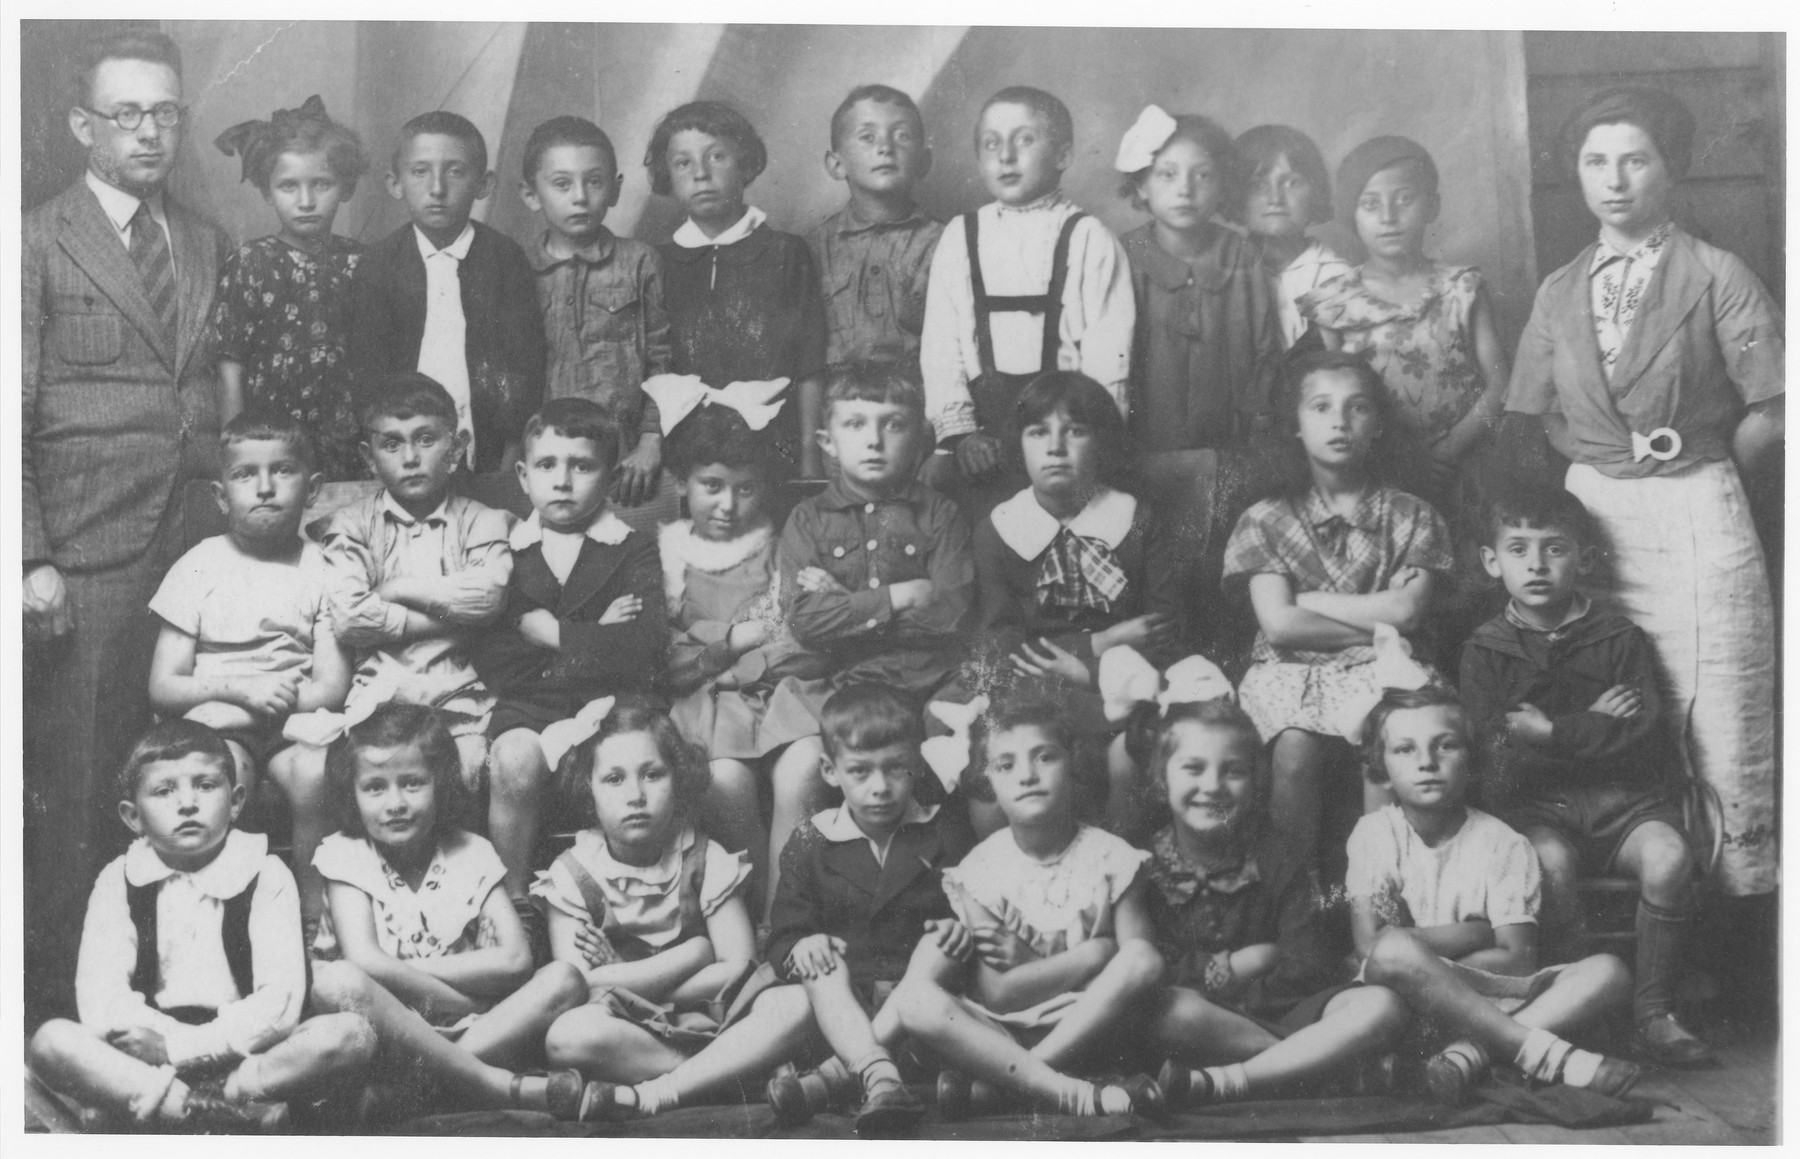 Group portrait of Jewish children in the first grade at the Tarbut school in Ostrow Mazowiecka.  Among those pictured are: Shmuel Povilewitch (top row, fourth child from the right); H. Podvilewitch (middle row, third from the left); Ruth Zlatkowska (front row, second from the left); Shimon Epstein (front row, center); Aaron Rubinstein (middle row, first on the right).